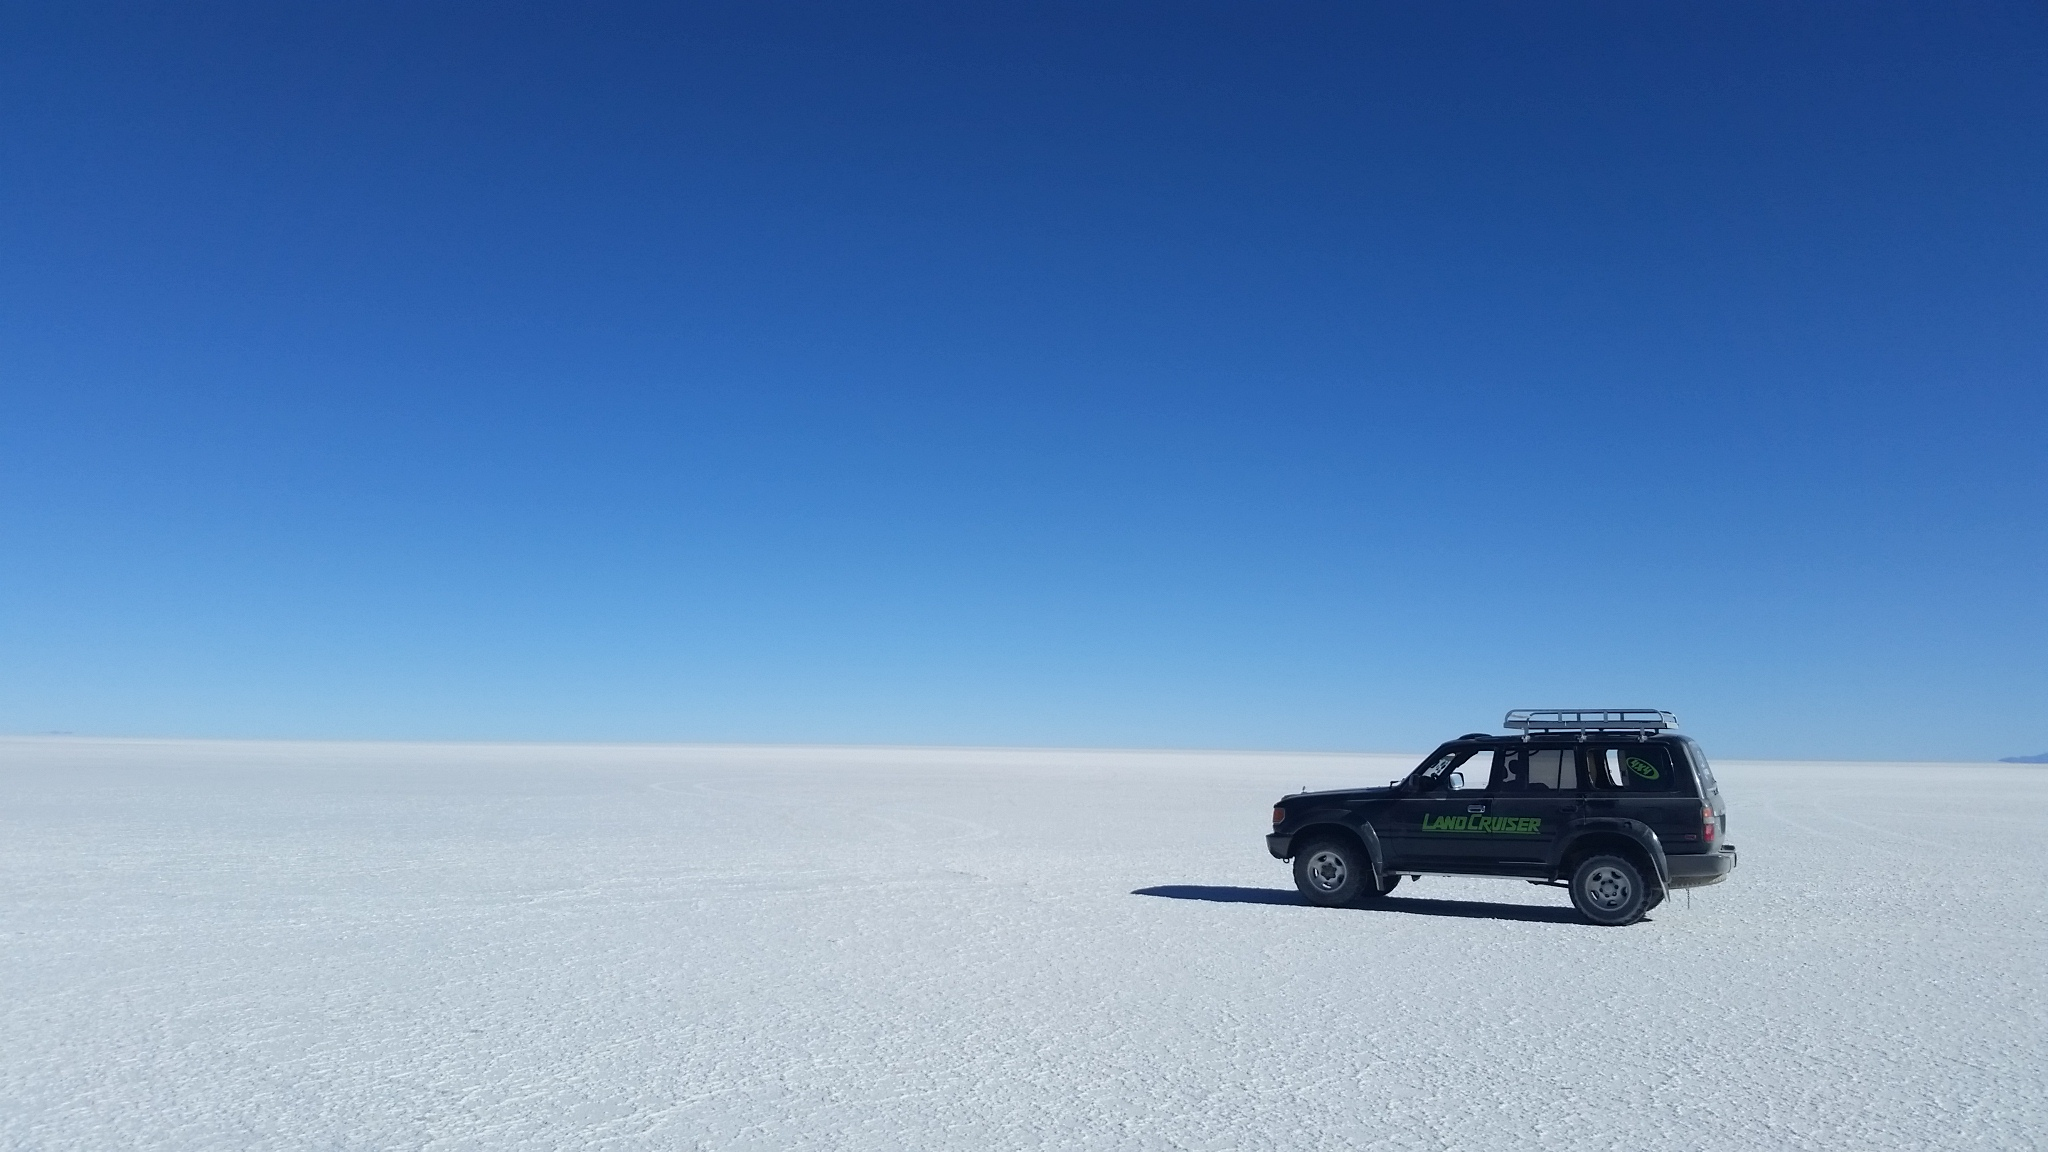 The Uyuni Salt Flats – Distance from Normal